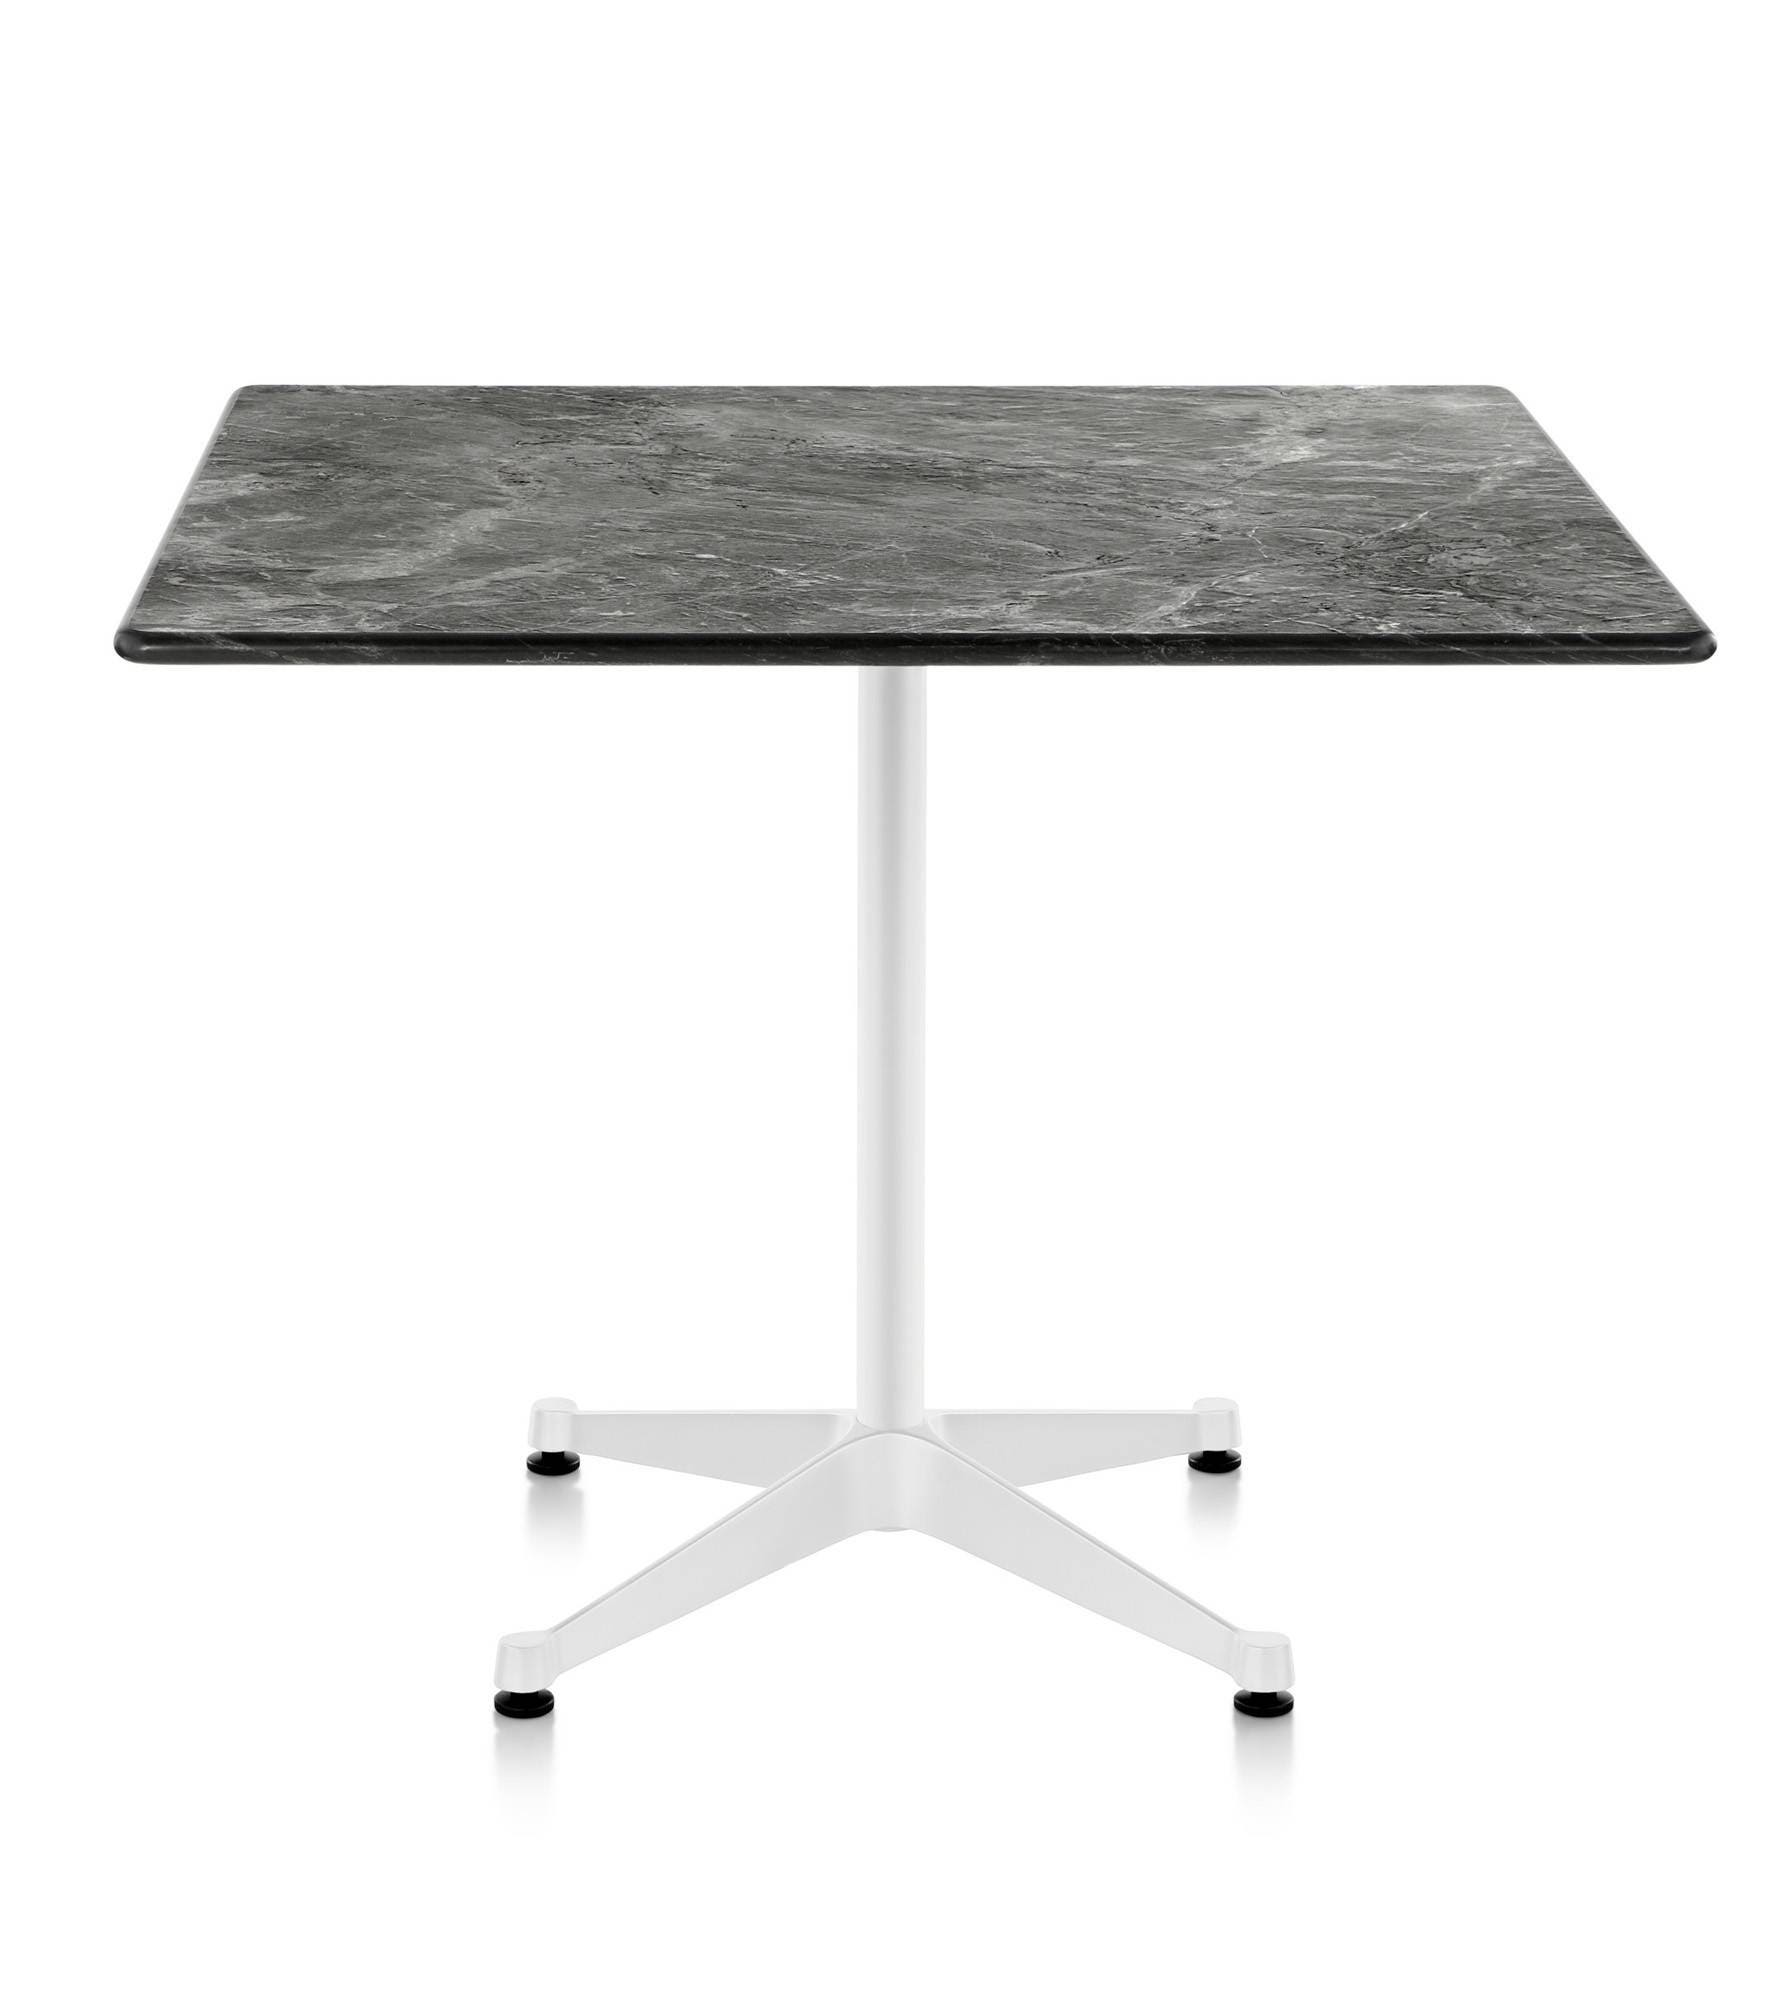 Herman miller eames outdoor table square gr shop canada - Eames table herman miller ...